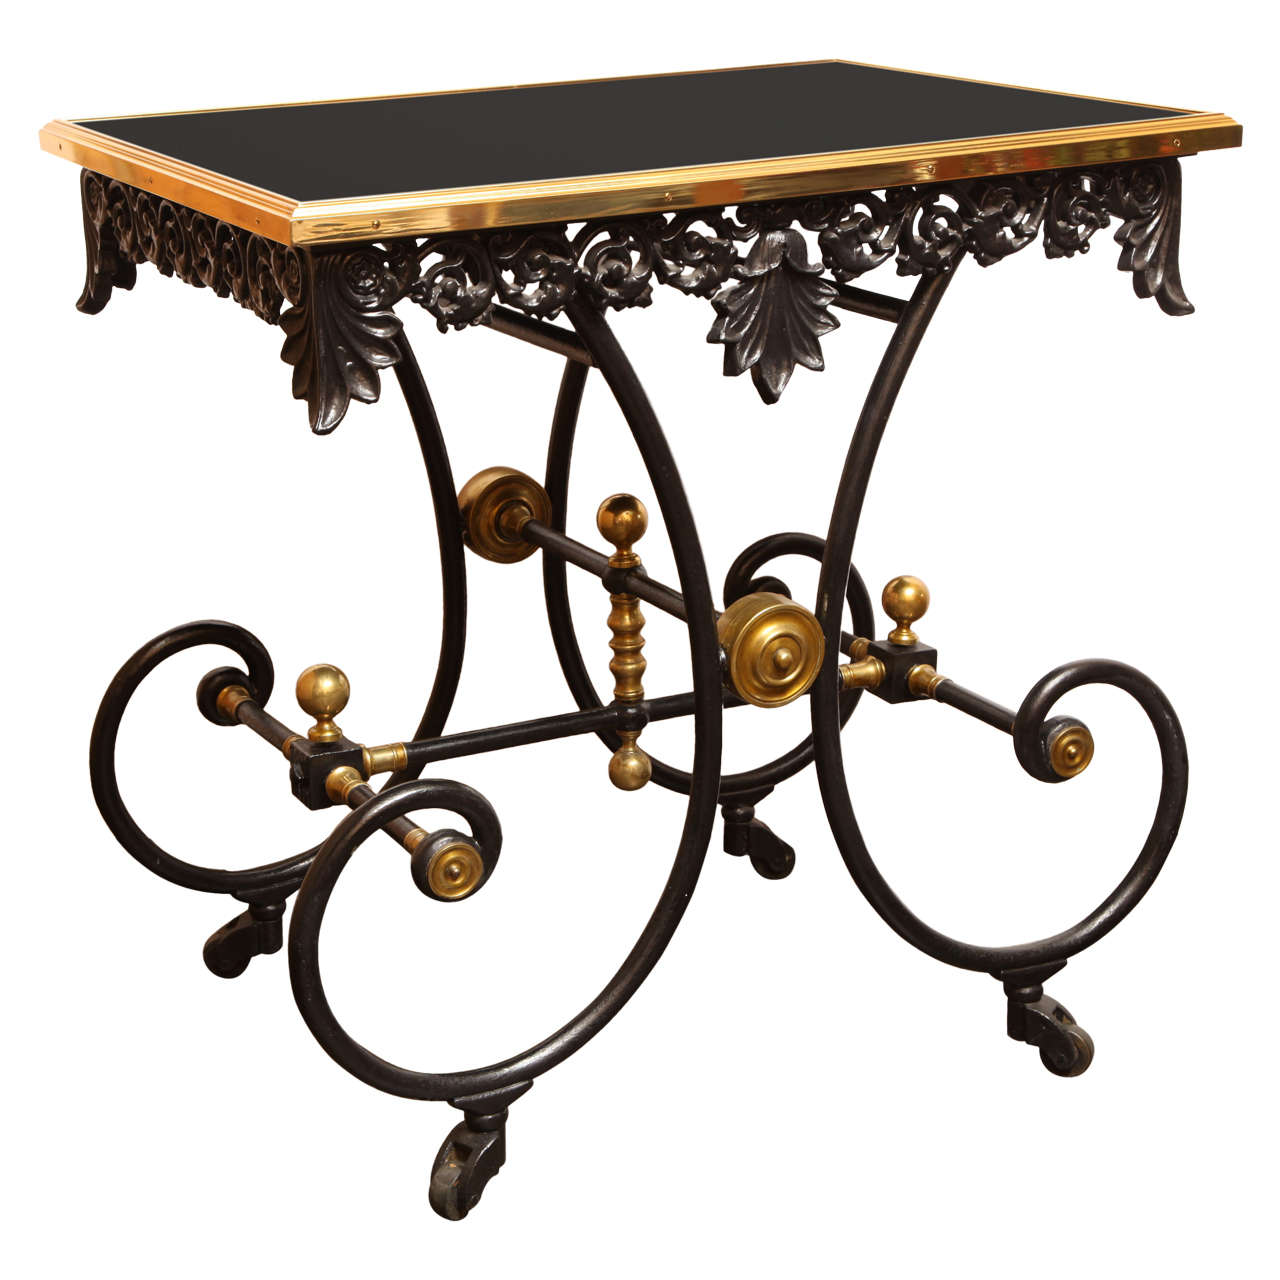 19th Century French Table on Wheels with a Modern Black-Glass Top